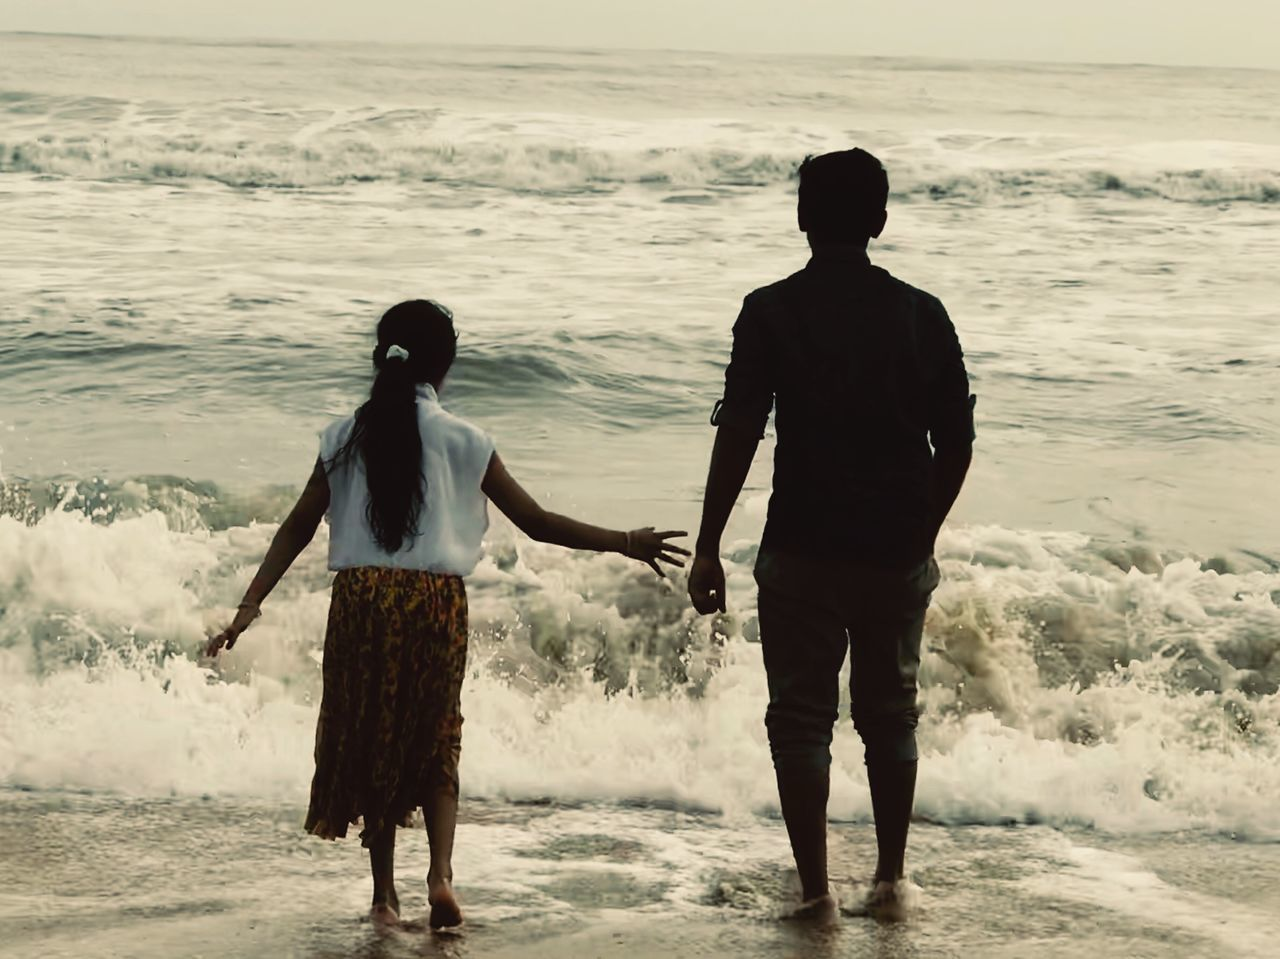 two people, beach, sea, real people, standing, love, water, sand, togetherness, wave, men, rear view, full length, leisure activity, sunset, nature, lifestyles, women, young women, day, outdoors, beauty in nature, bonding, horizon over water, sky, young adult